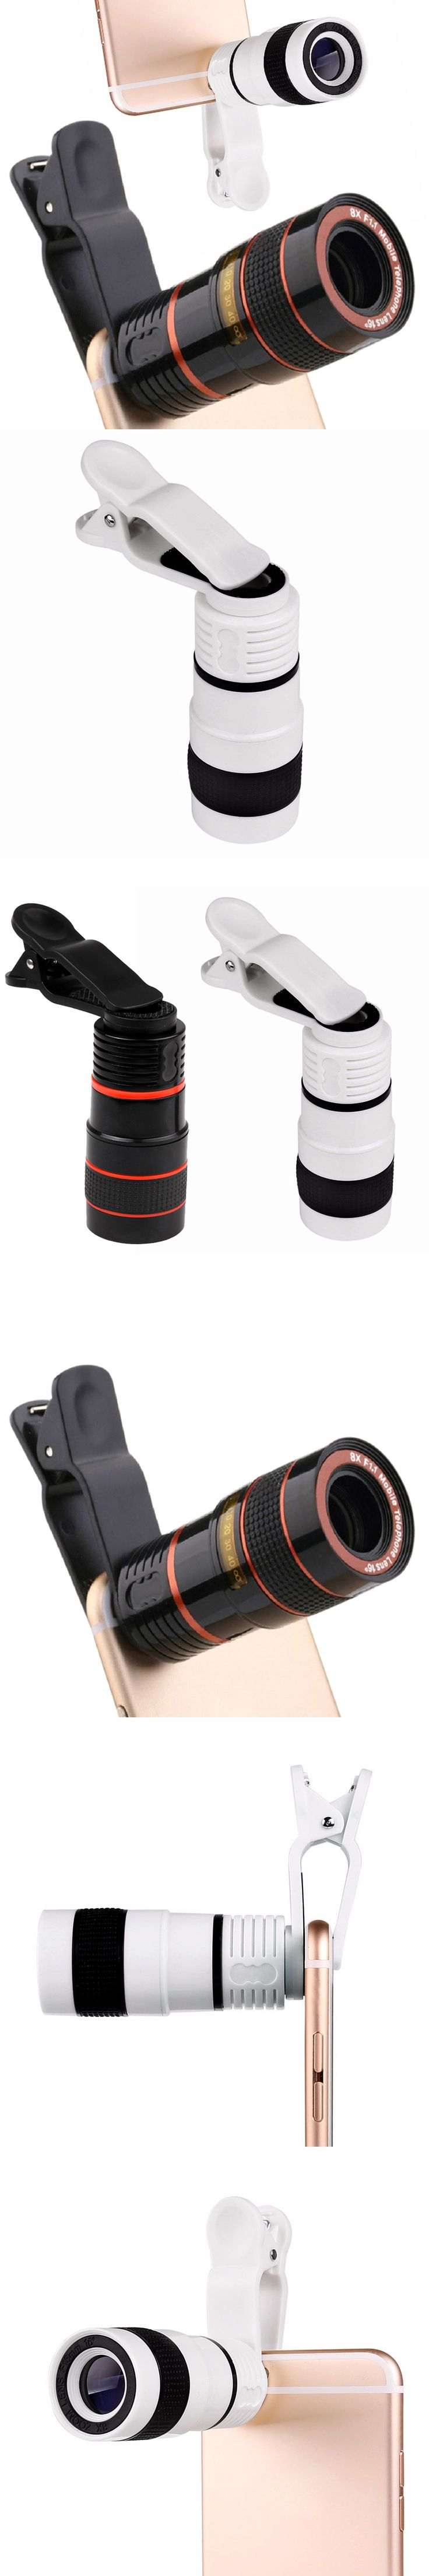 Universal Outdoors 8X Zoom Telescope Phone Camera Lens with Clip for iPhone Samsung HTC Huawei Xiaomi Other Mobile Phones